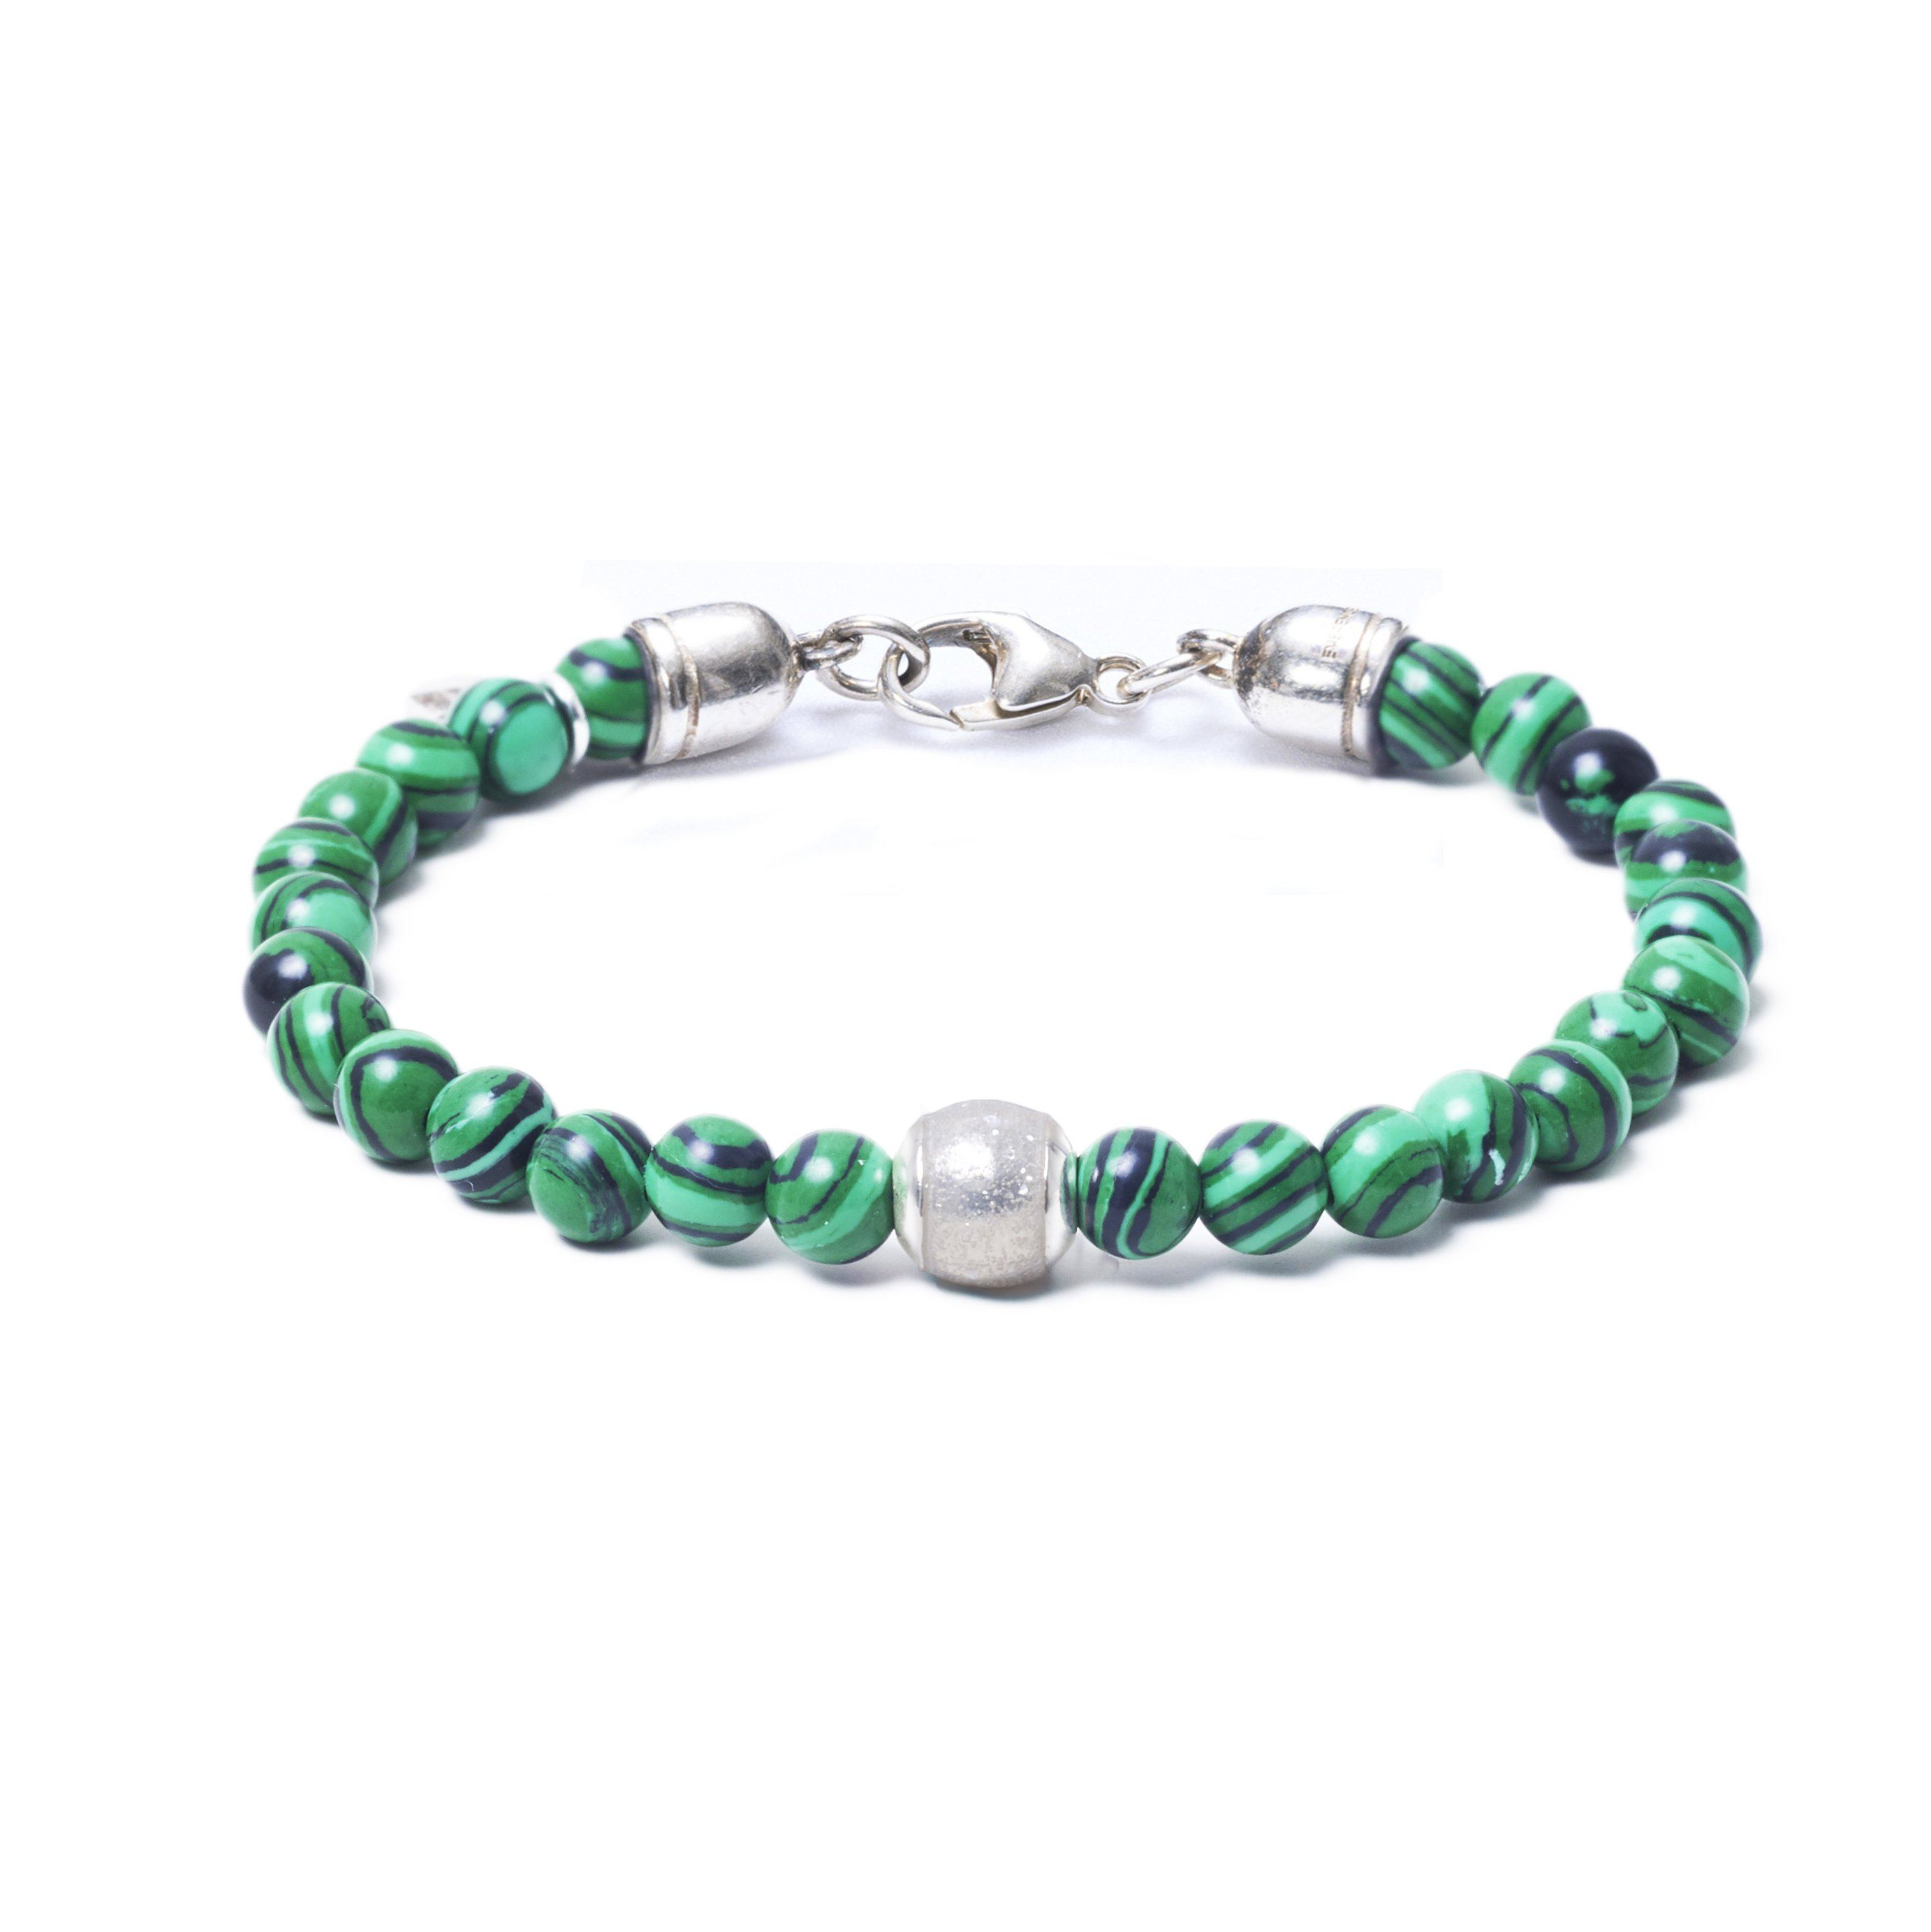 Malachite, One Everence Bead everence.life Clear Lobster Claw 7